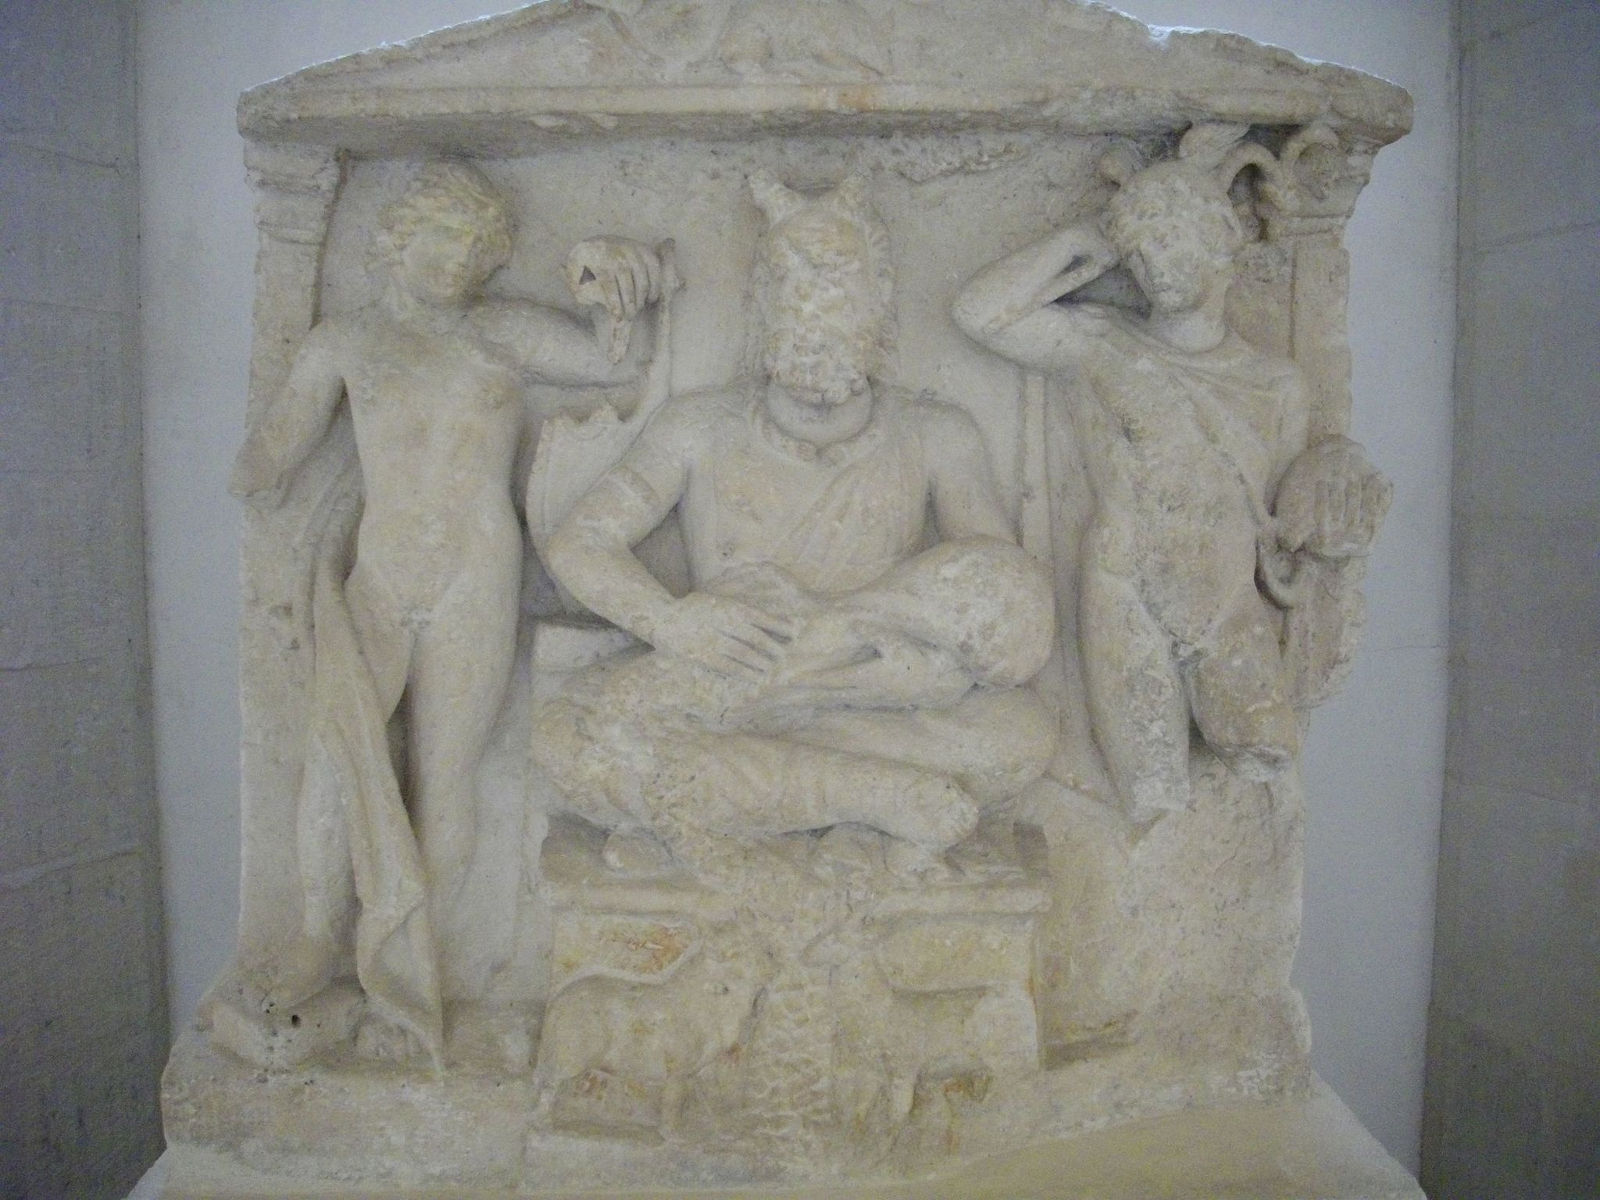 relief of horned god in Reims, France